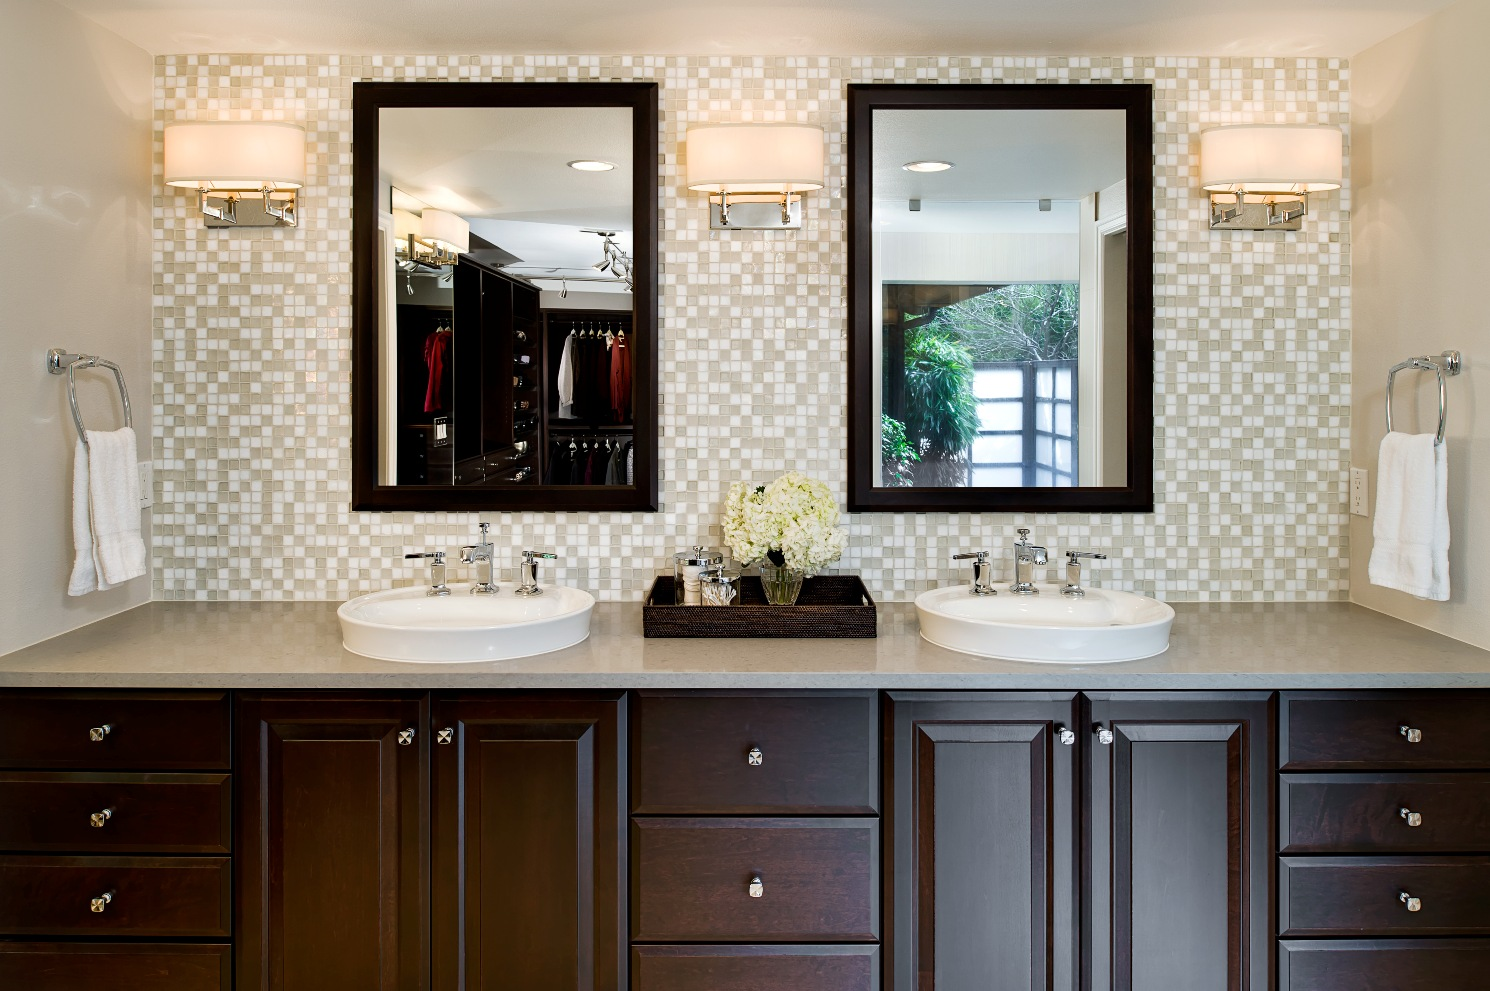 Things To Consider In Applying Bathroom Backsplash Ideas For Visual Interest Artmakehome,Black And White Wallpaper For Small Bathroom